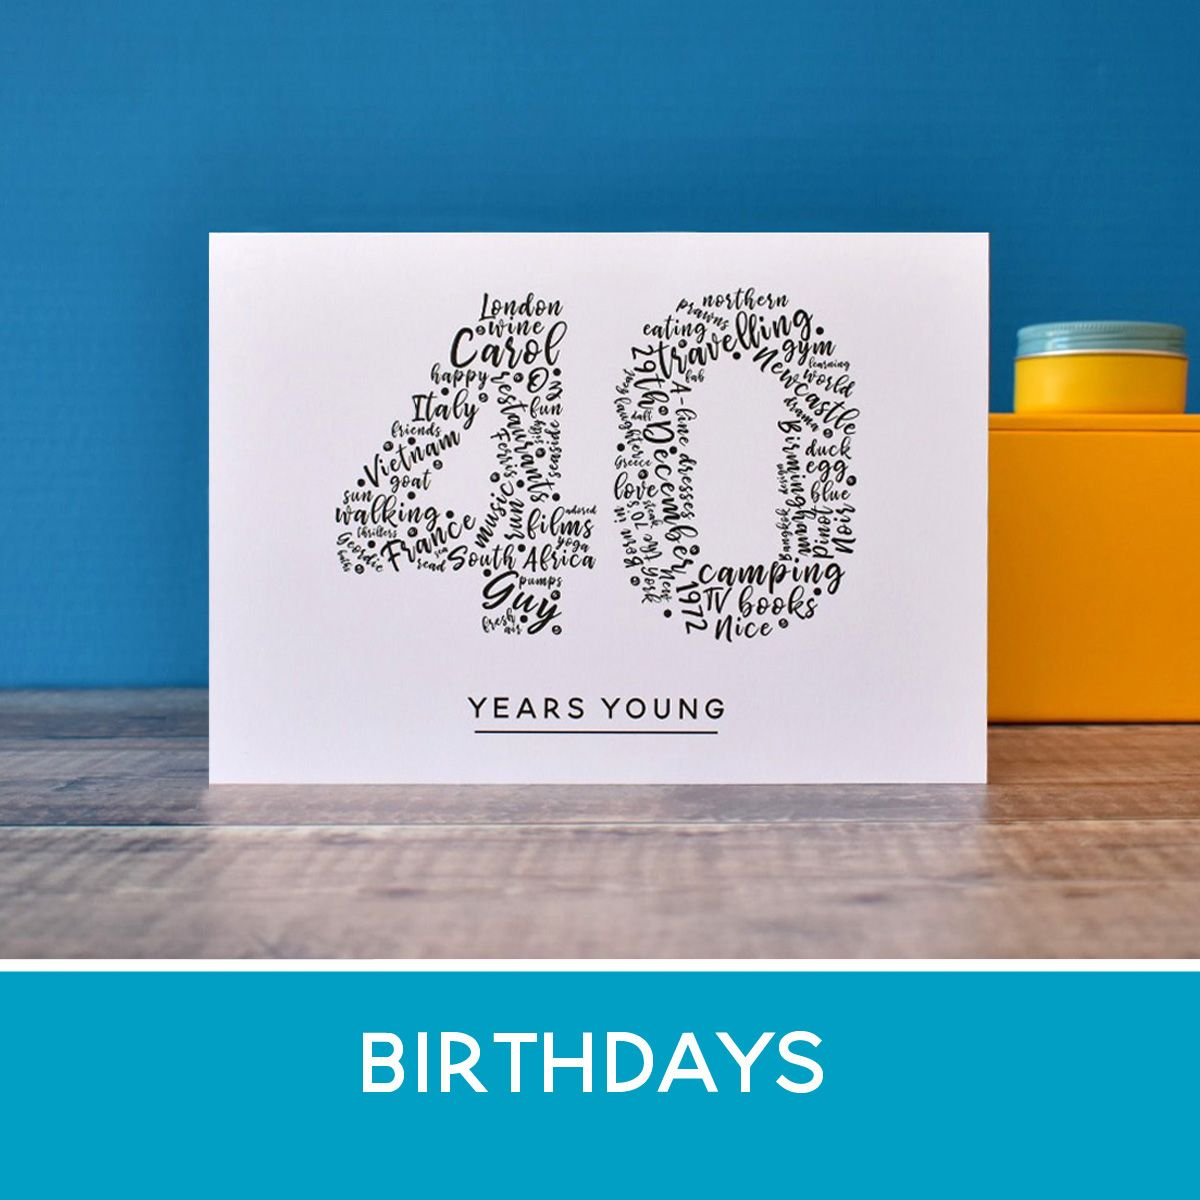 personalised birthday prints, cards and gifts